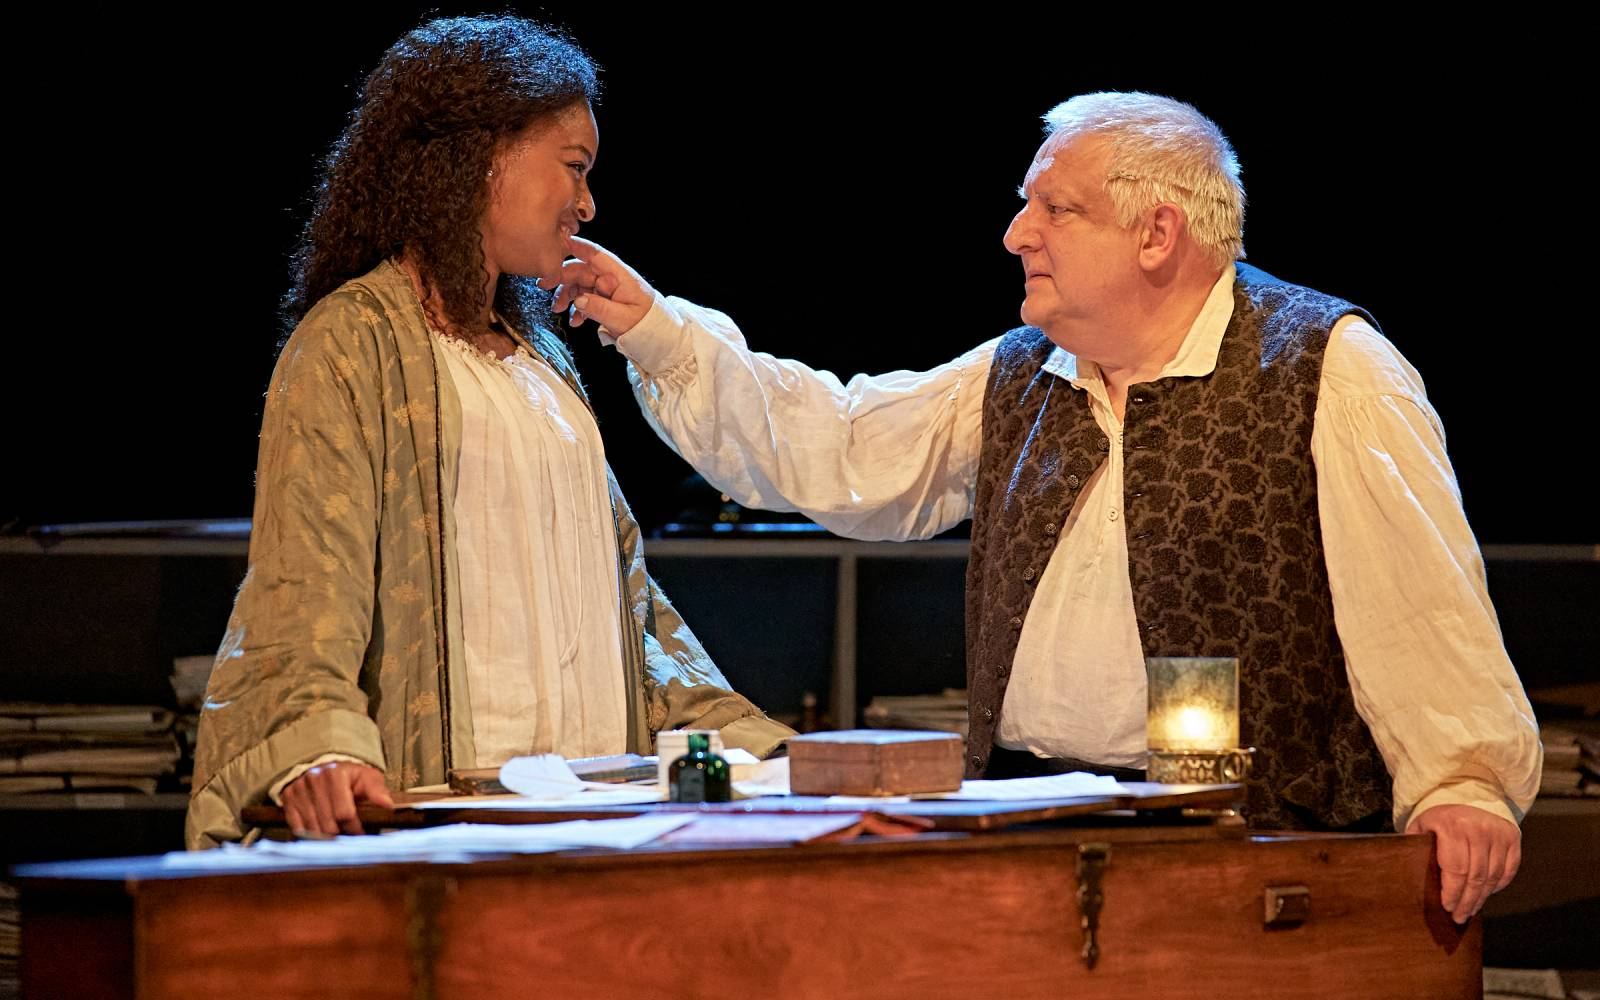 Racheal Ofori and Simon Russell Beale are stood behind the harpsicord. They're looking at each other and his hand is touching her cheek.